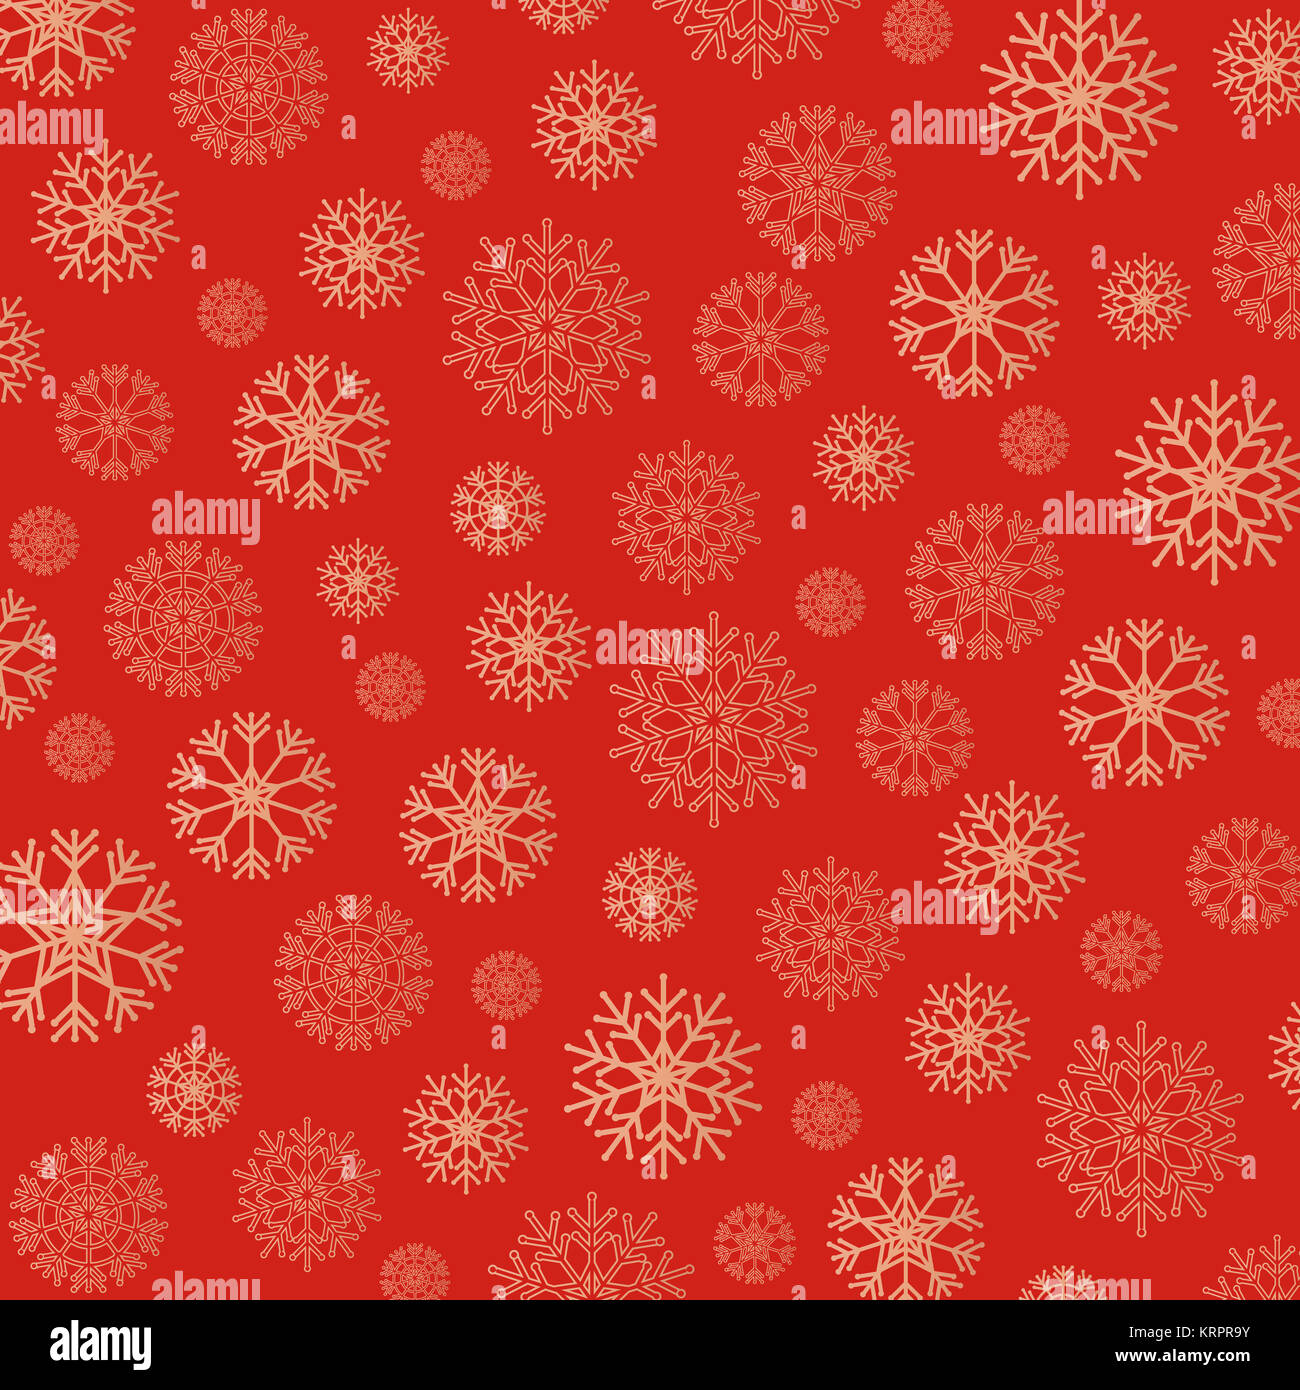 Gorgeous snowflakes background in golden and red Stock Photo